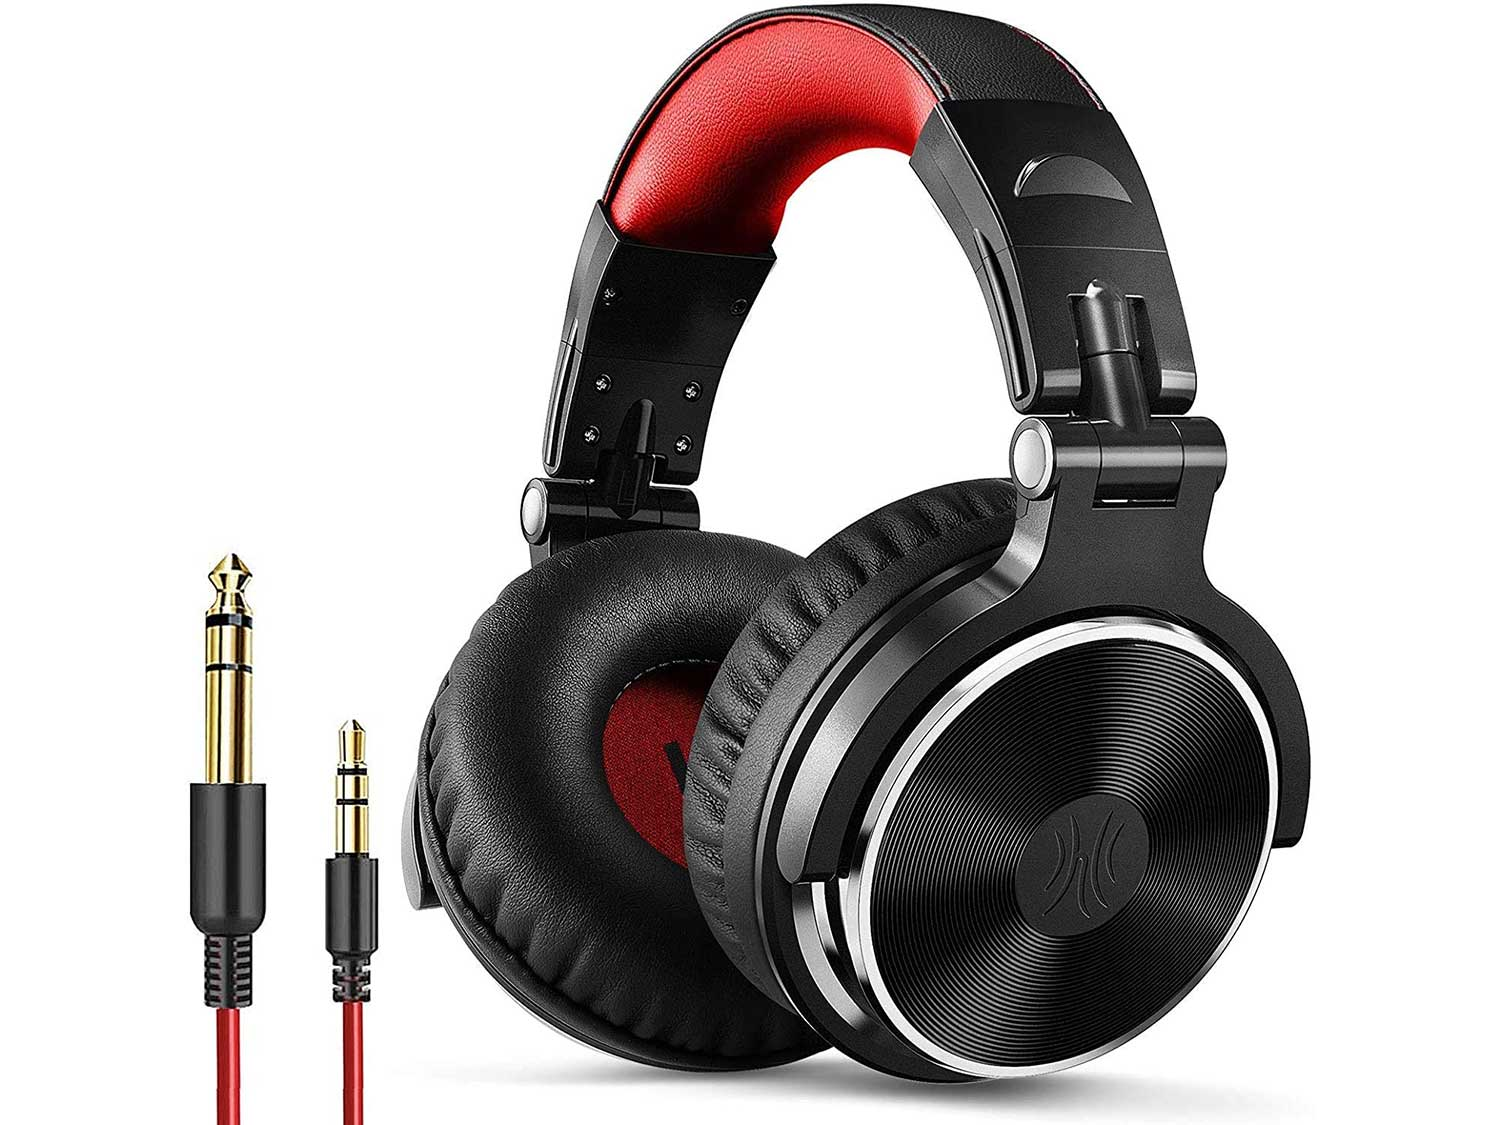 OneOdio Wired Over Ear Headphones Hi-Fi Sound & Bass Boosted headphone with 50mm Neodymium Drivers and 1/4 to 3.5mm Audio Jack for Studio DJ AMP Recording Monitoring Phones Laptop (Red)